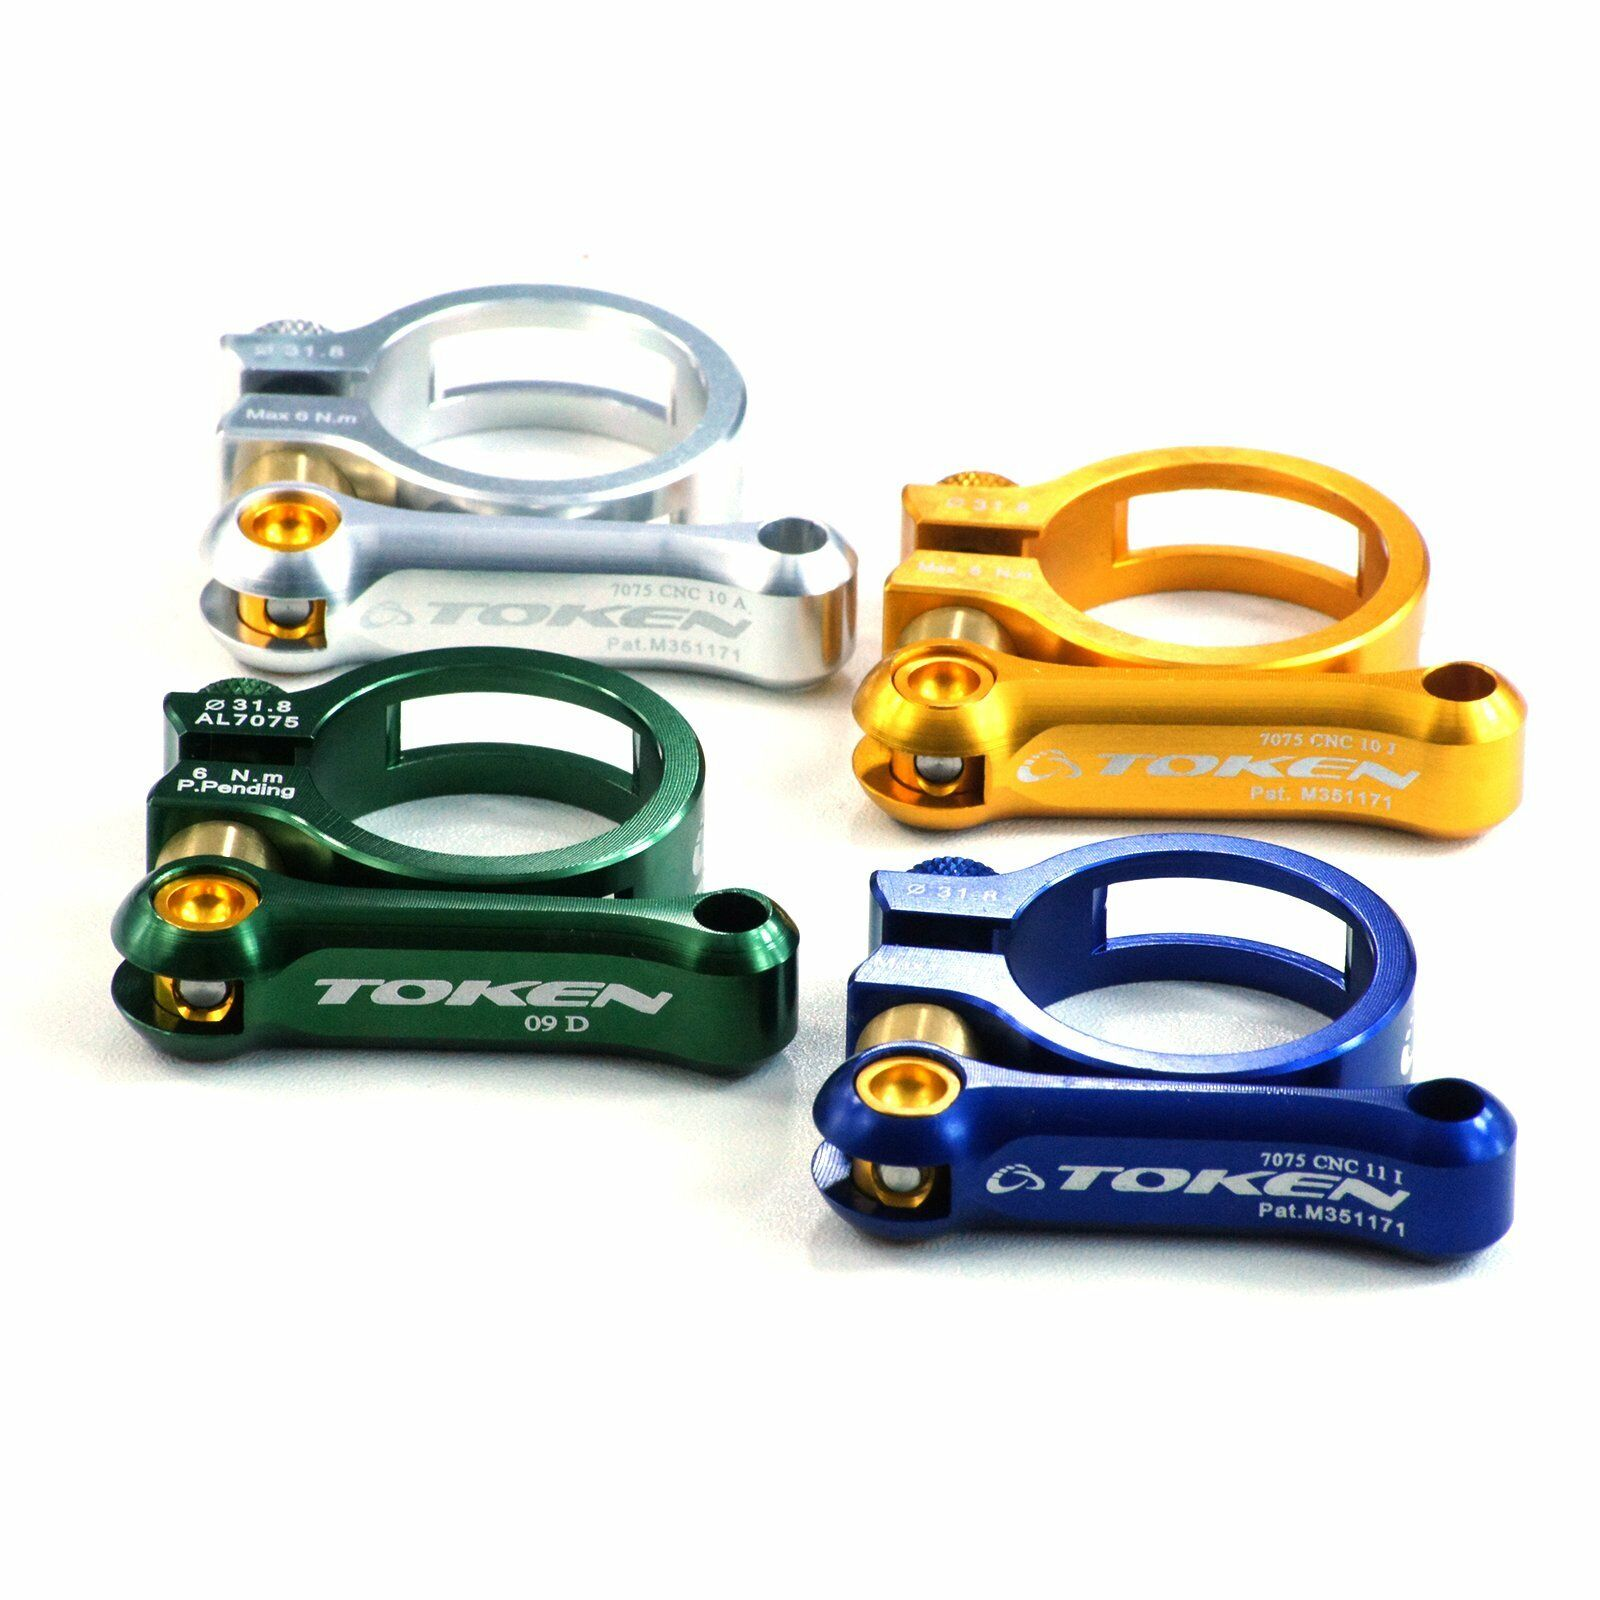 TOKEN Front Derailleur Clamp 28.6 mm 34.9 mm ~Lightweight 31.8 mm